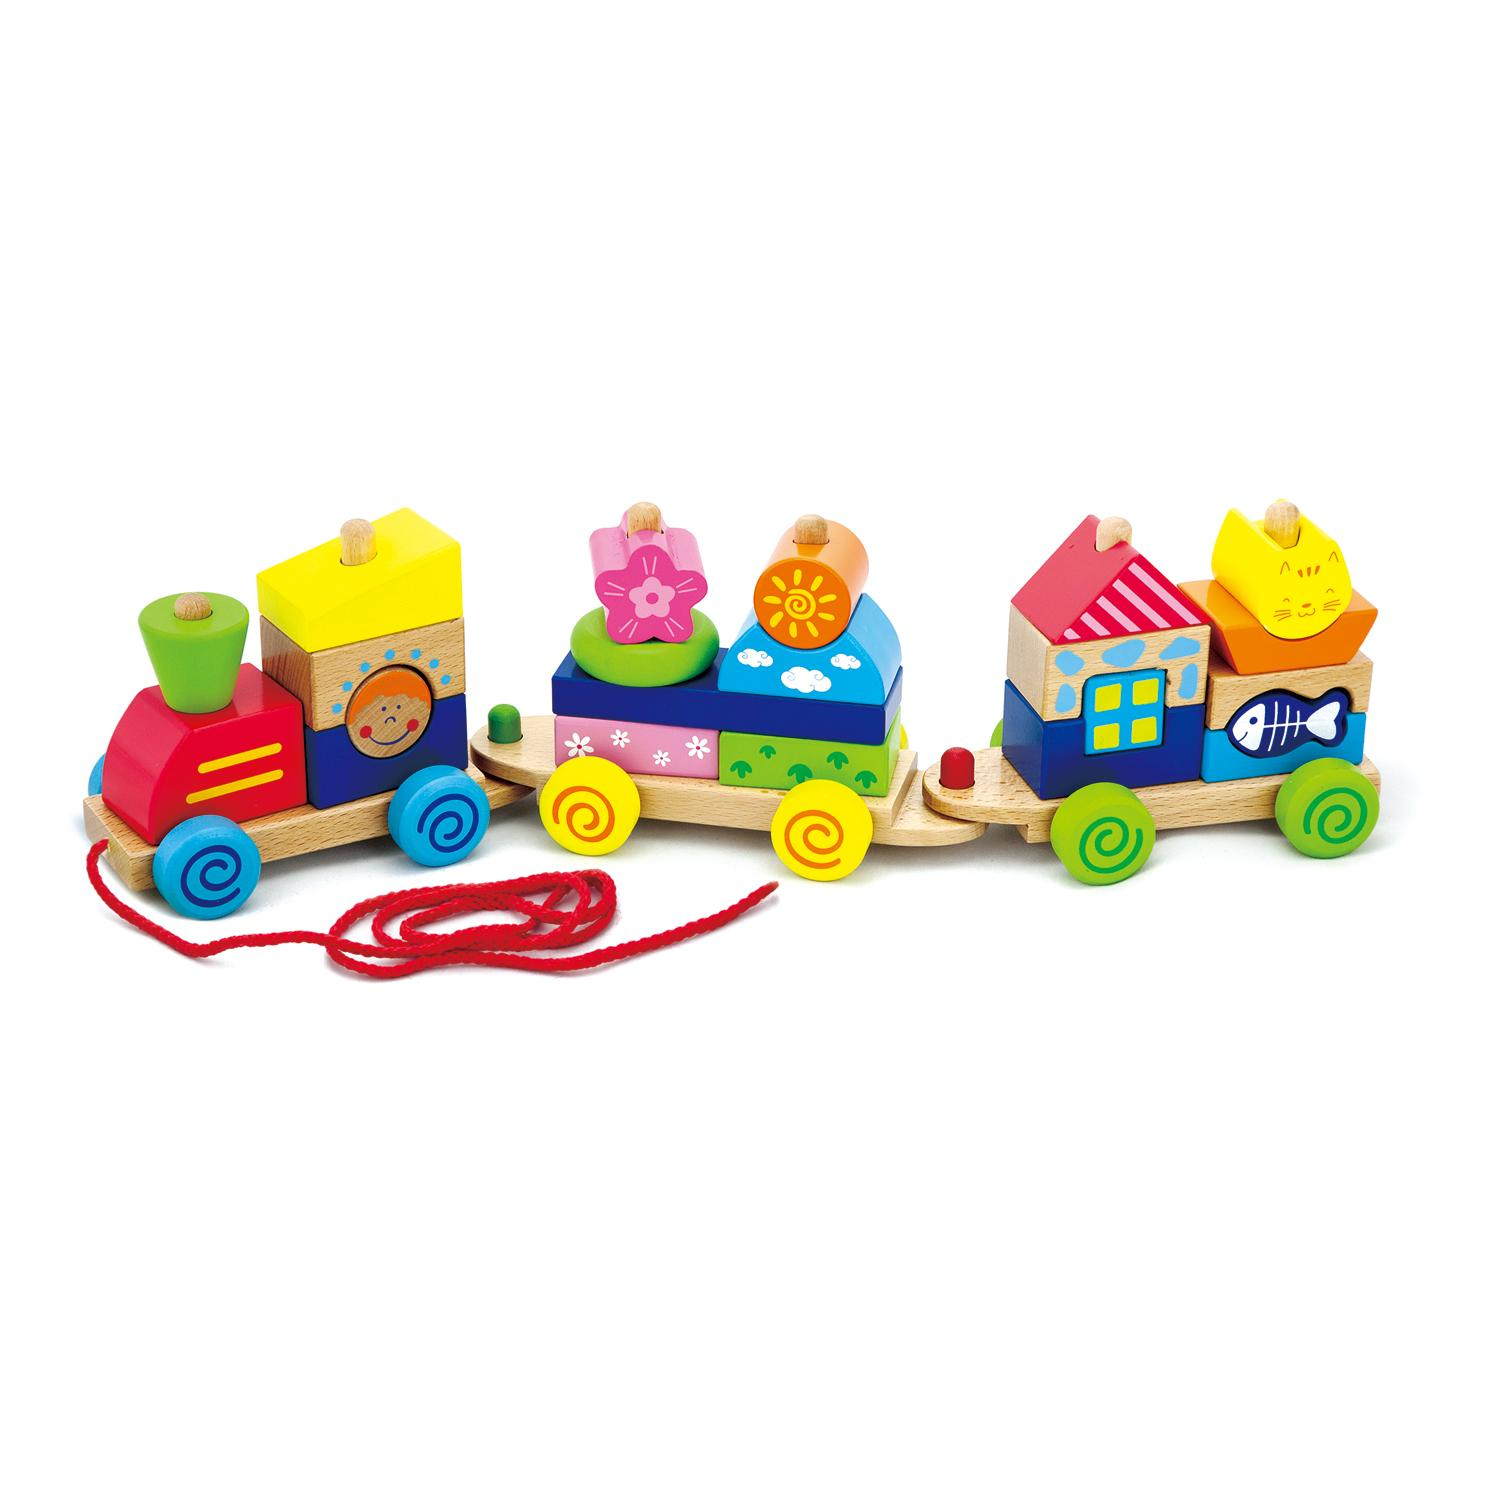 New Wooden Building Blocks Stacking Pll Along Childrens Kids Train